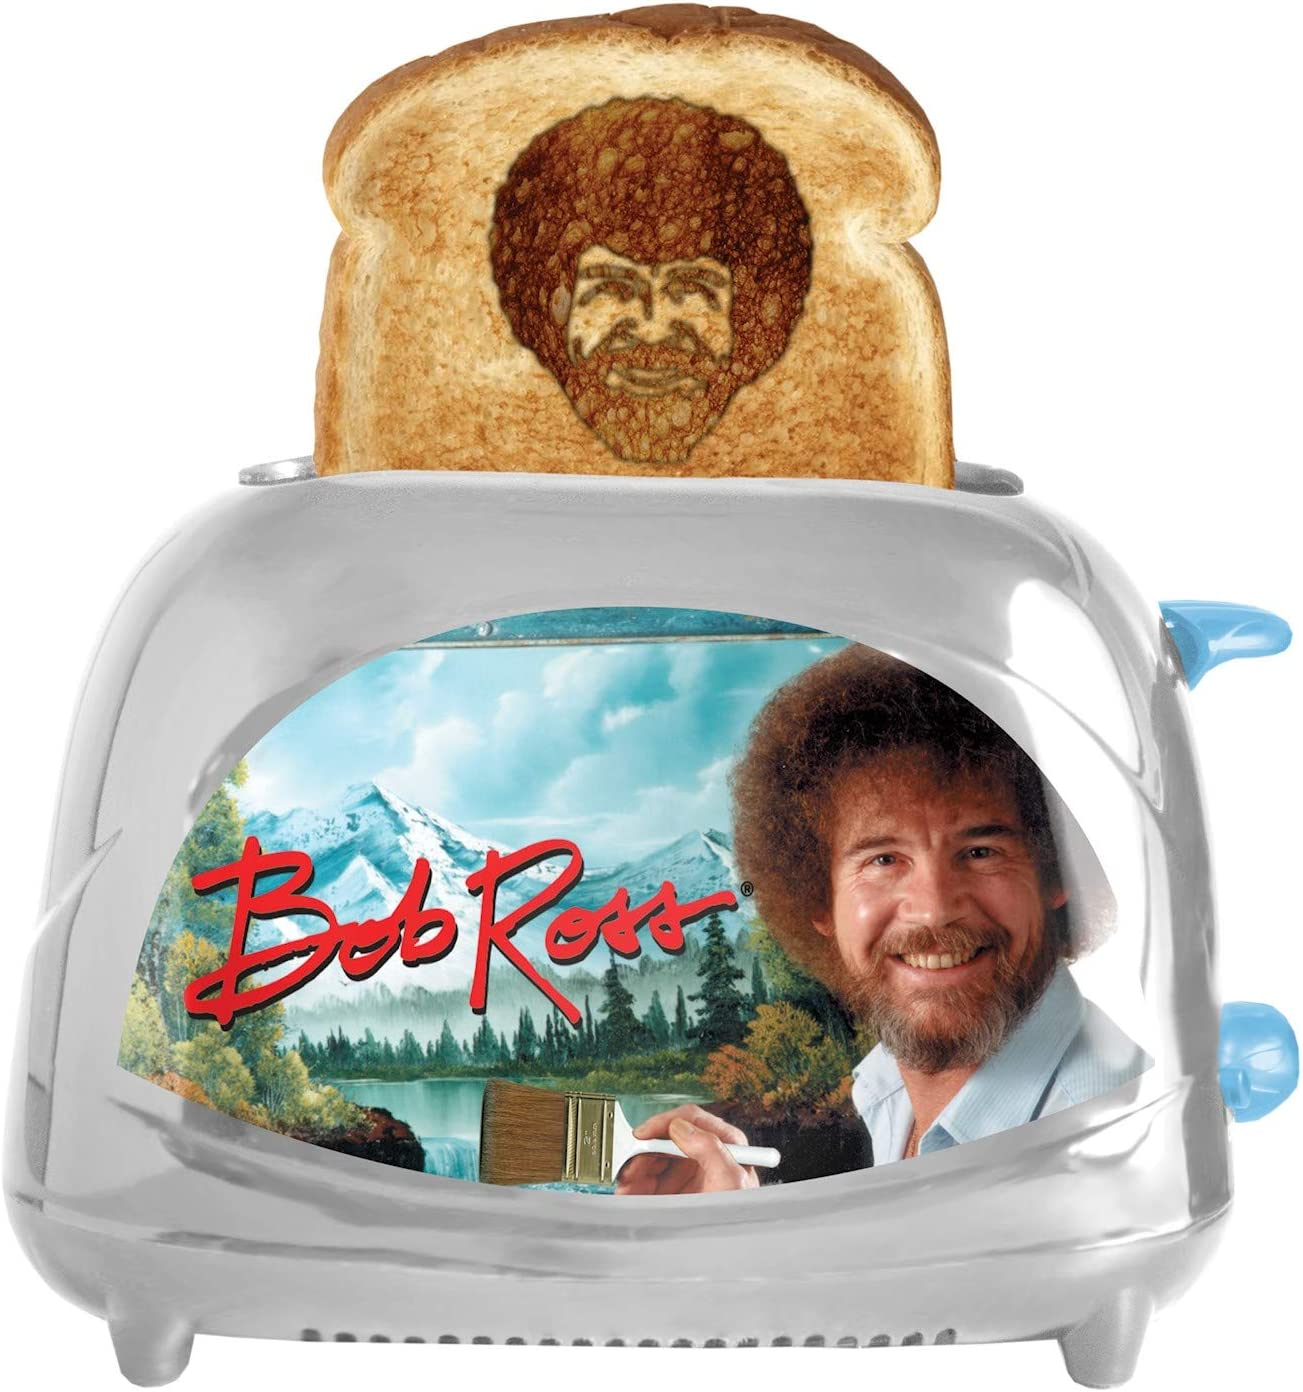 Bob Ross Toaster - Super-cheap Toasts Bob's Spasm price onto Iconic Your Toast Face